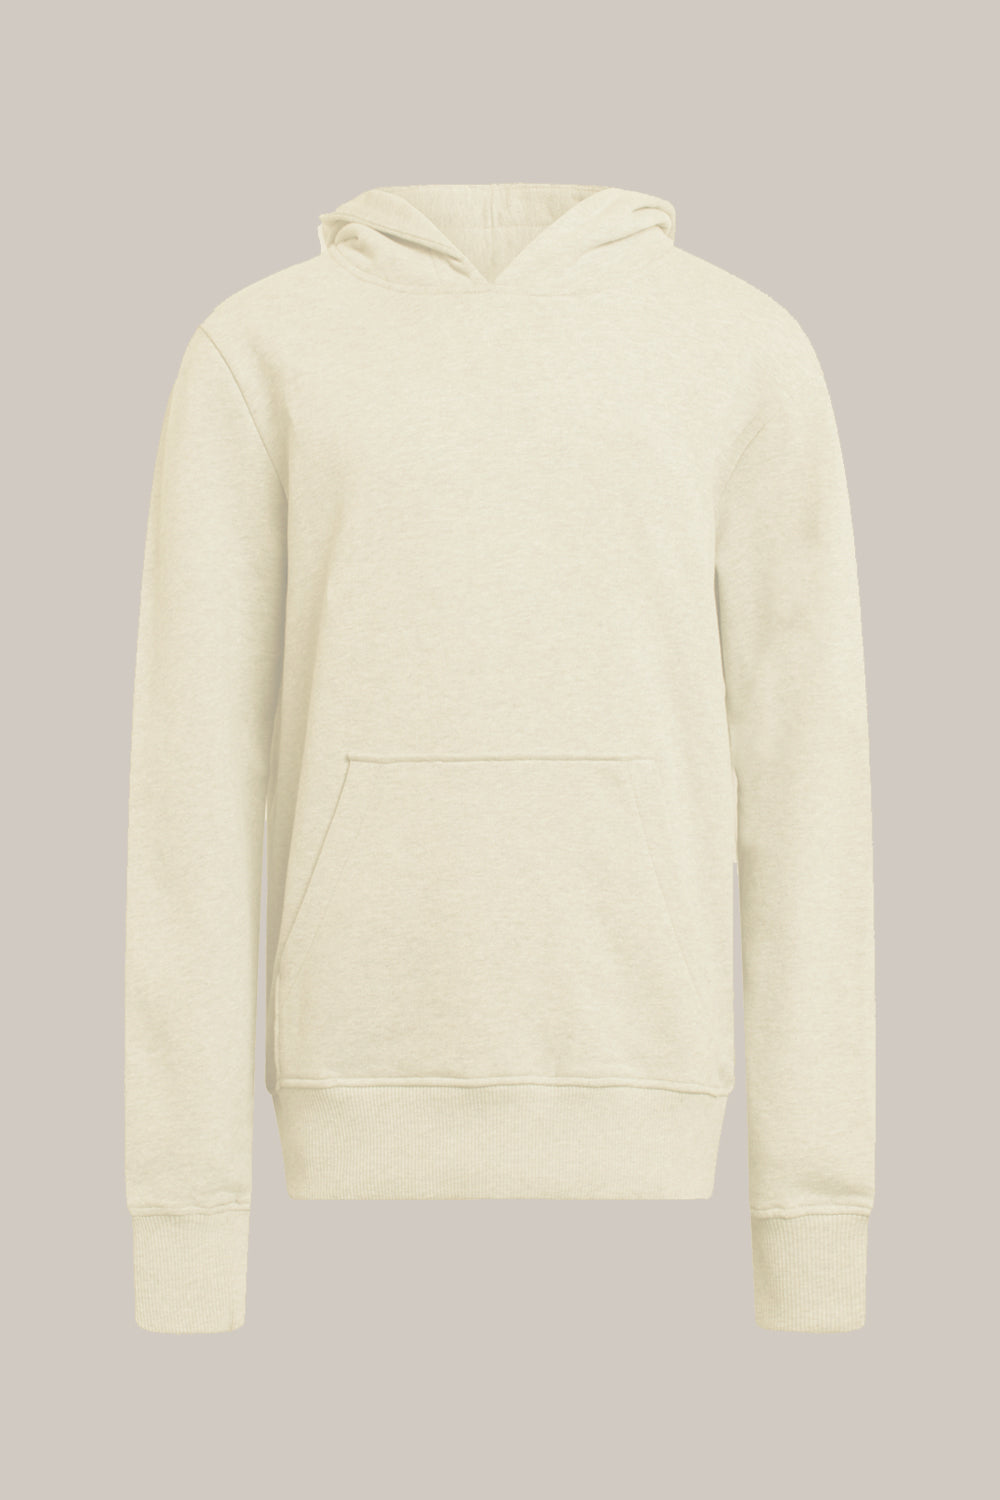 GRUNT OUR Alice Hood Sweat Sweats Cream White